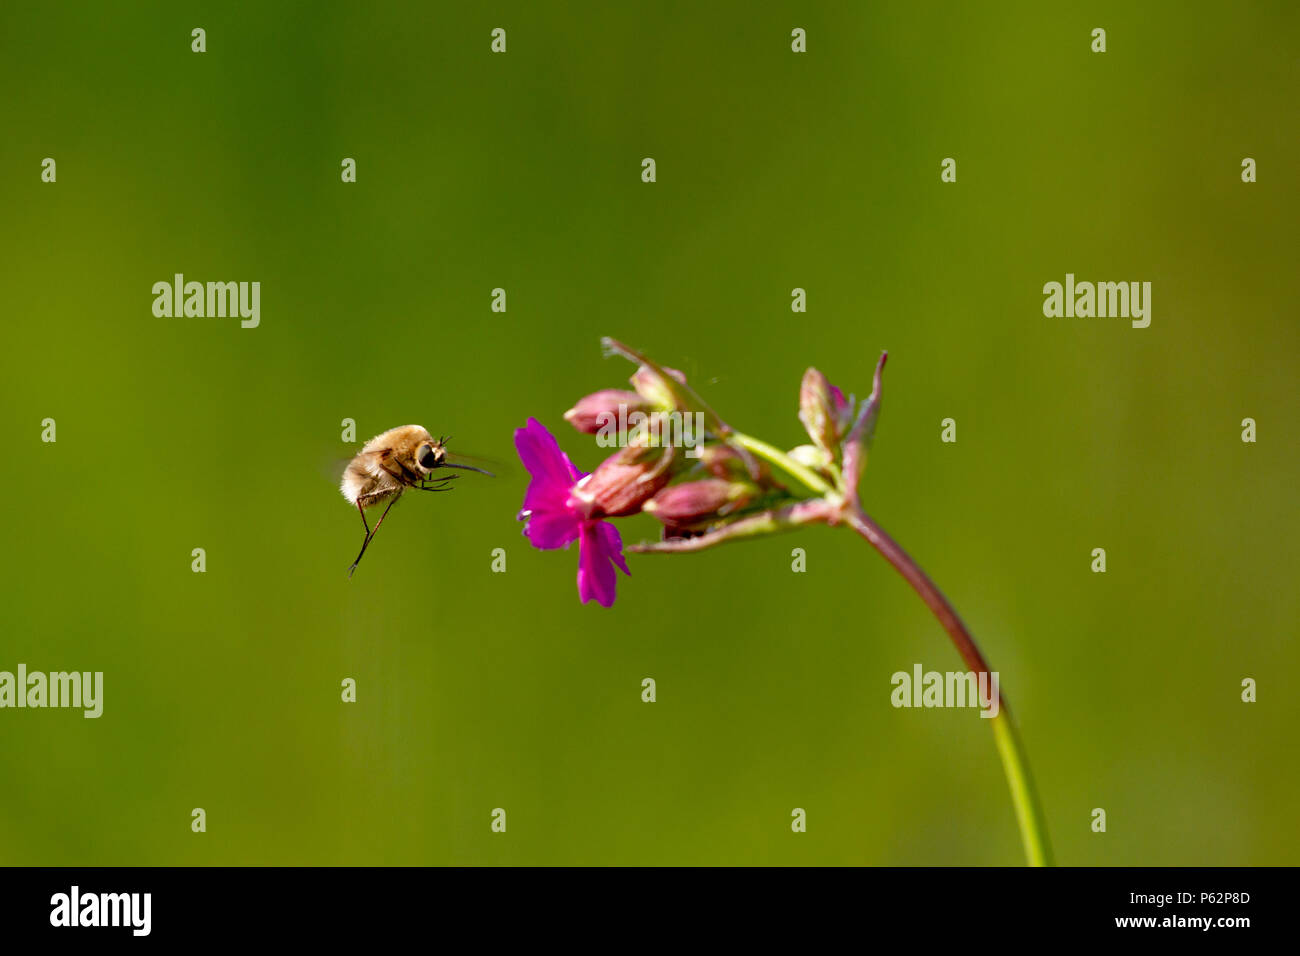 Bee - bombylius major on green background. Pollinate flower. Bee with long proboscis flies on flower - Stock Image